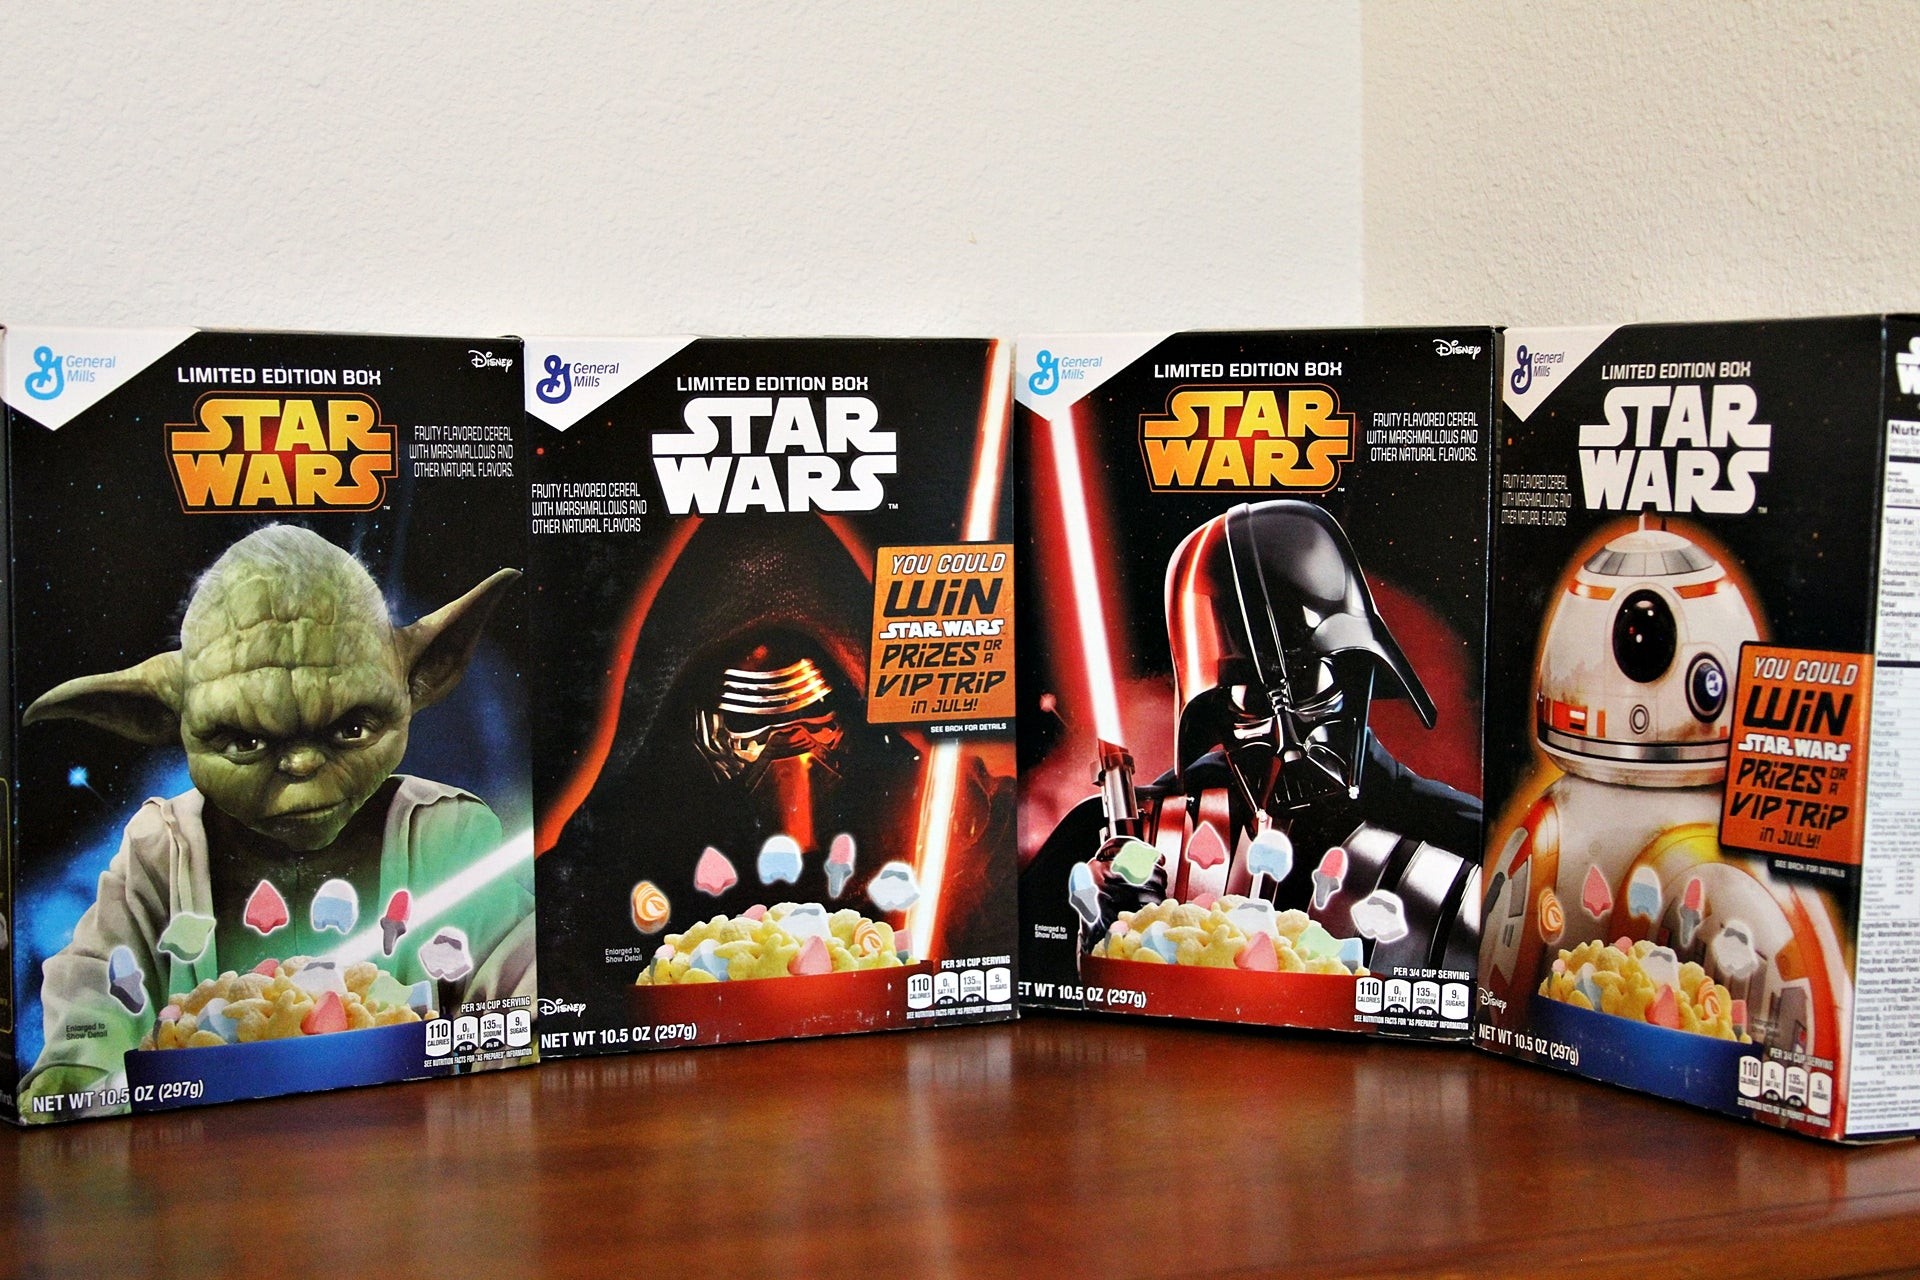 4 Unopened Limited Edition Star Wars Cereal Boxes W/ Free Item